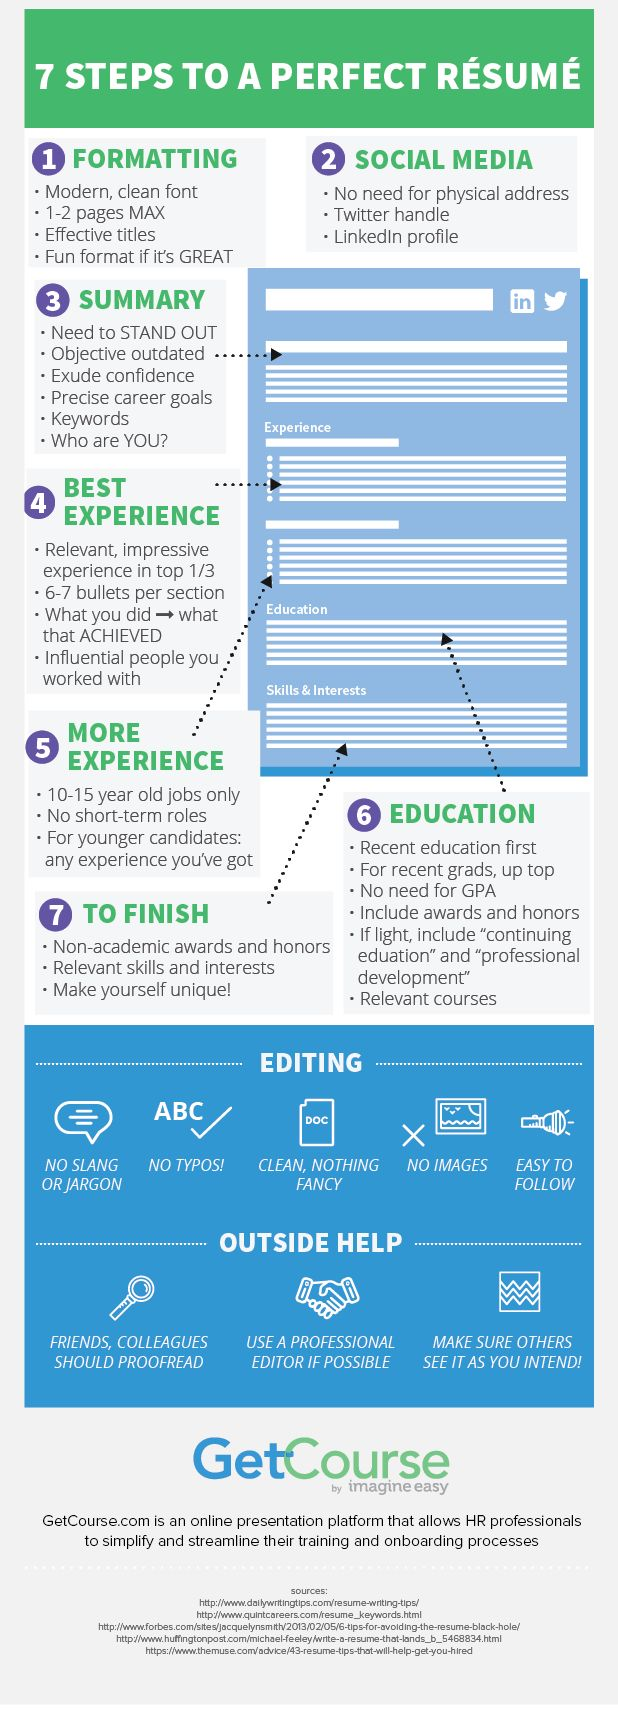 best images about work stuff resume tips career 7 steps to a perfect resume